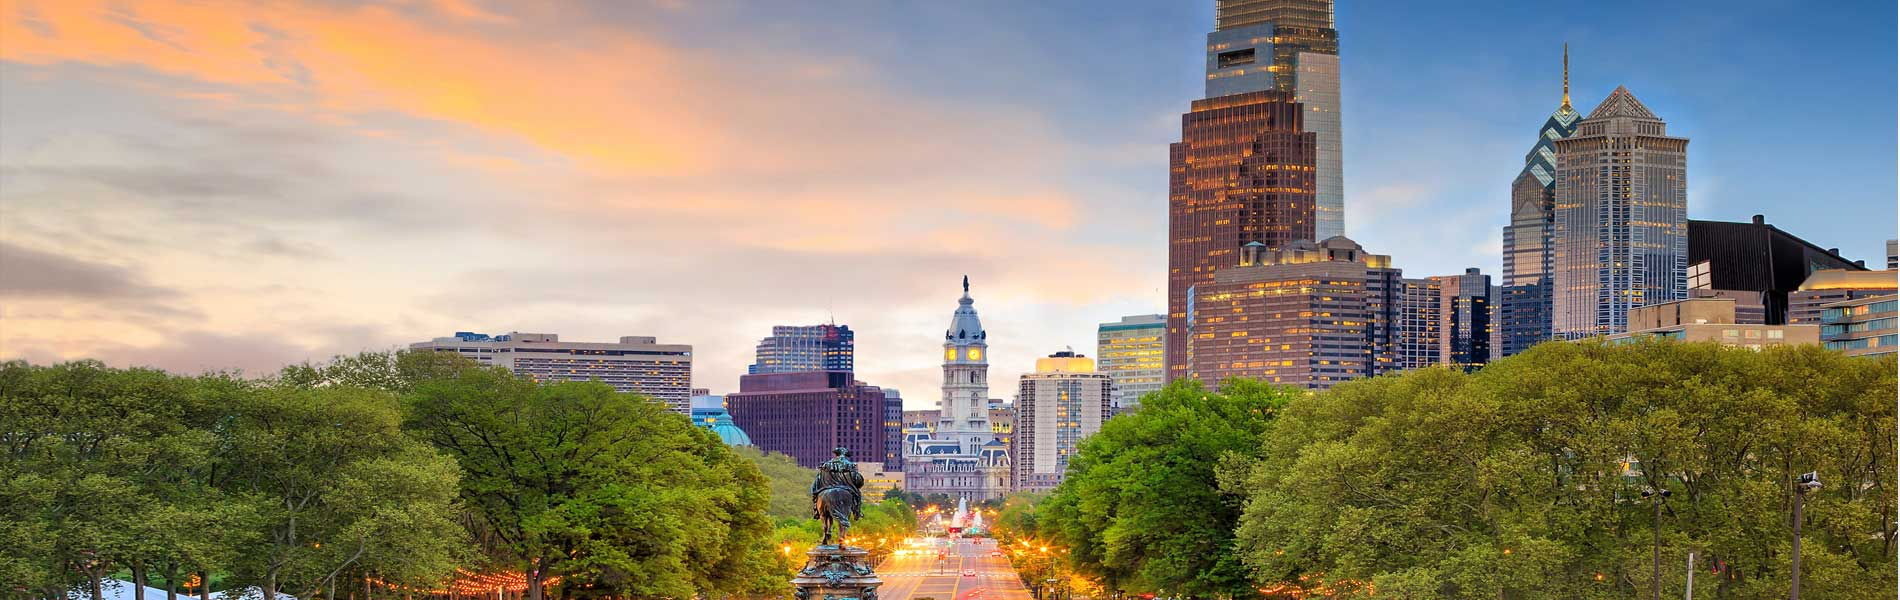 2018 ISPE Annual Meeting & Expo: Welcome to Philly - ISPE Pharmaceutical Engineering